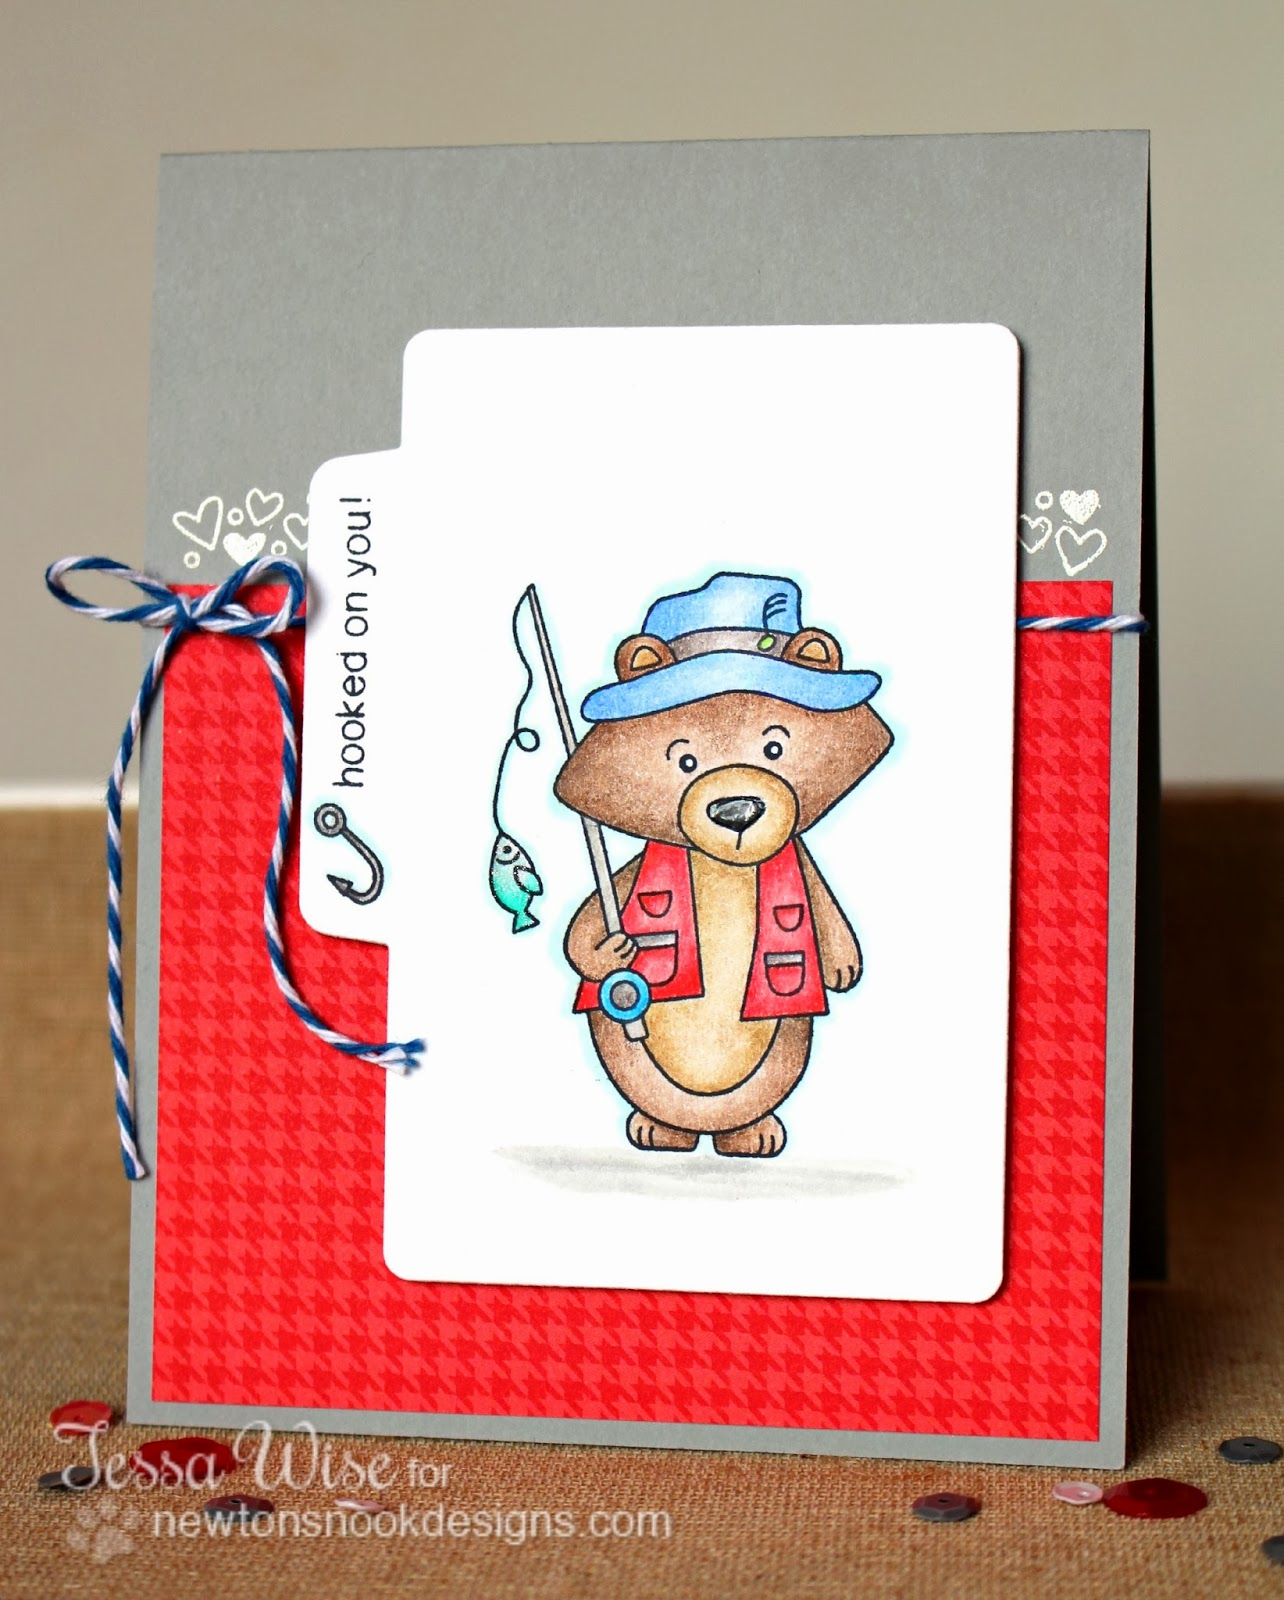 Fishing Bear Card using Campfire Tails Stamp set by Tessa Wise for Newton's Nook Designs